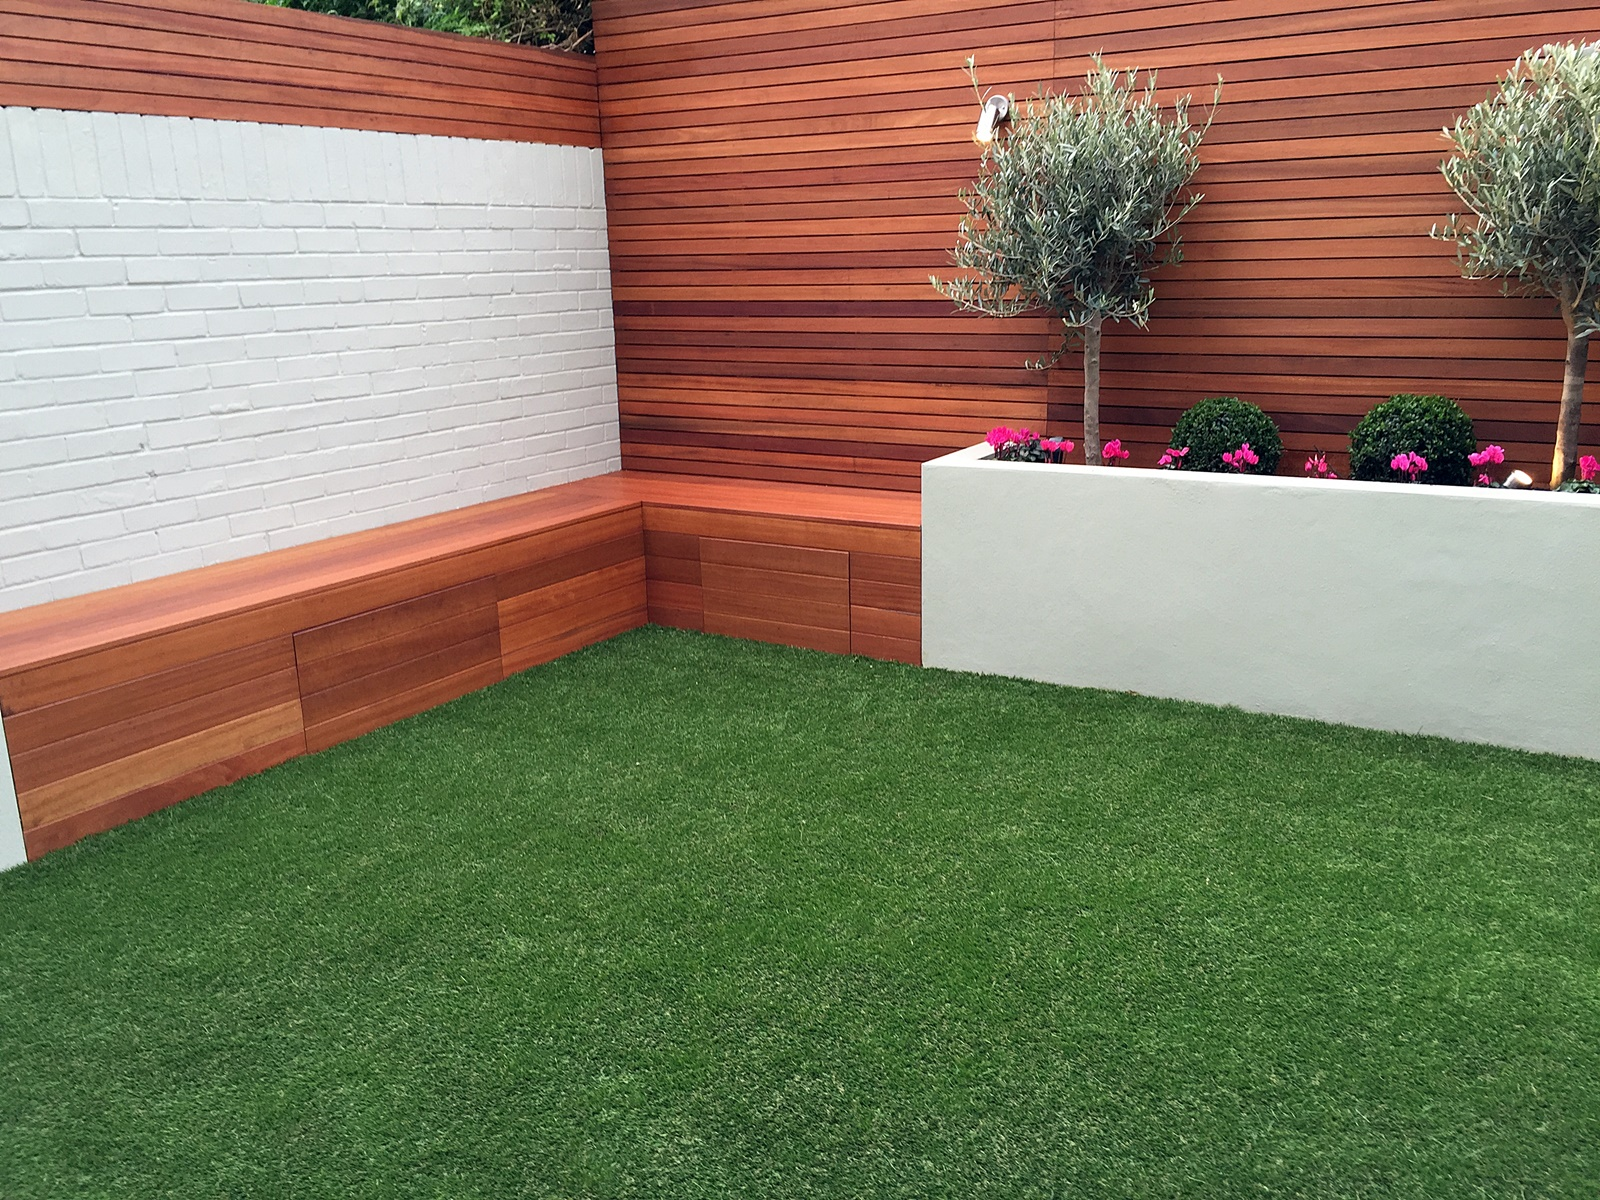 modern small garden design ideas clapham battersea dulwich balham fulham chelsea london